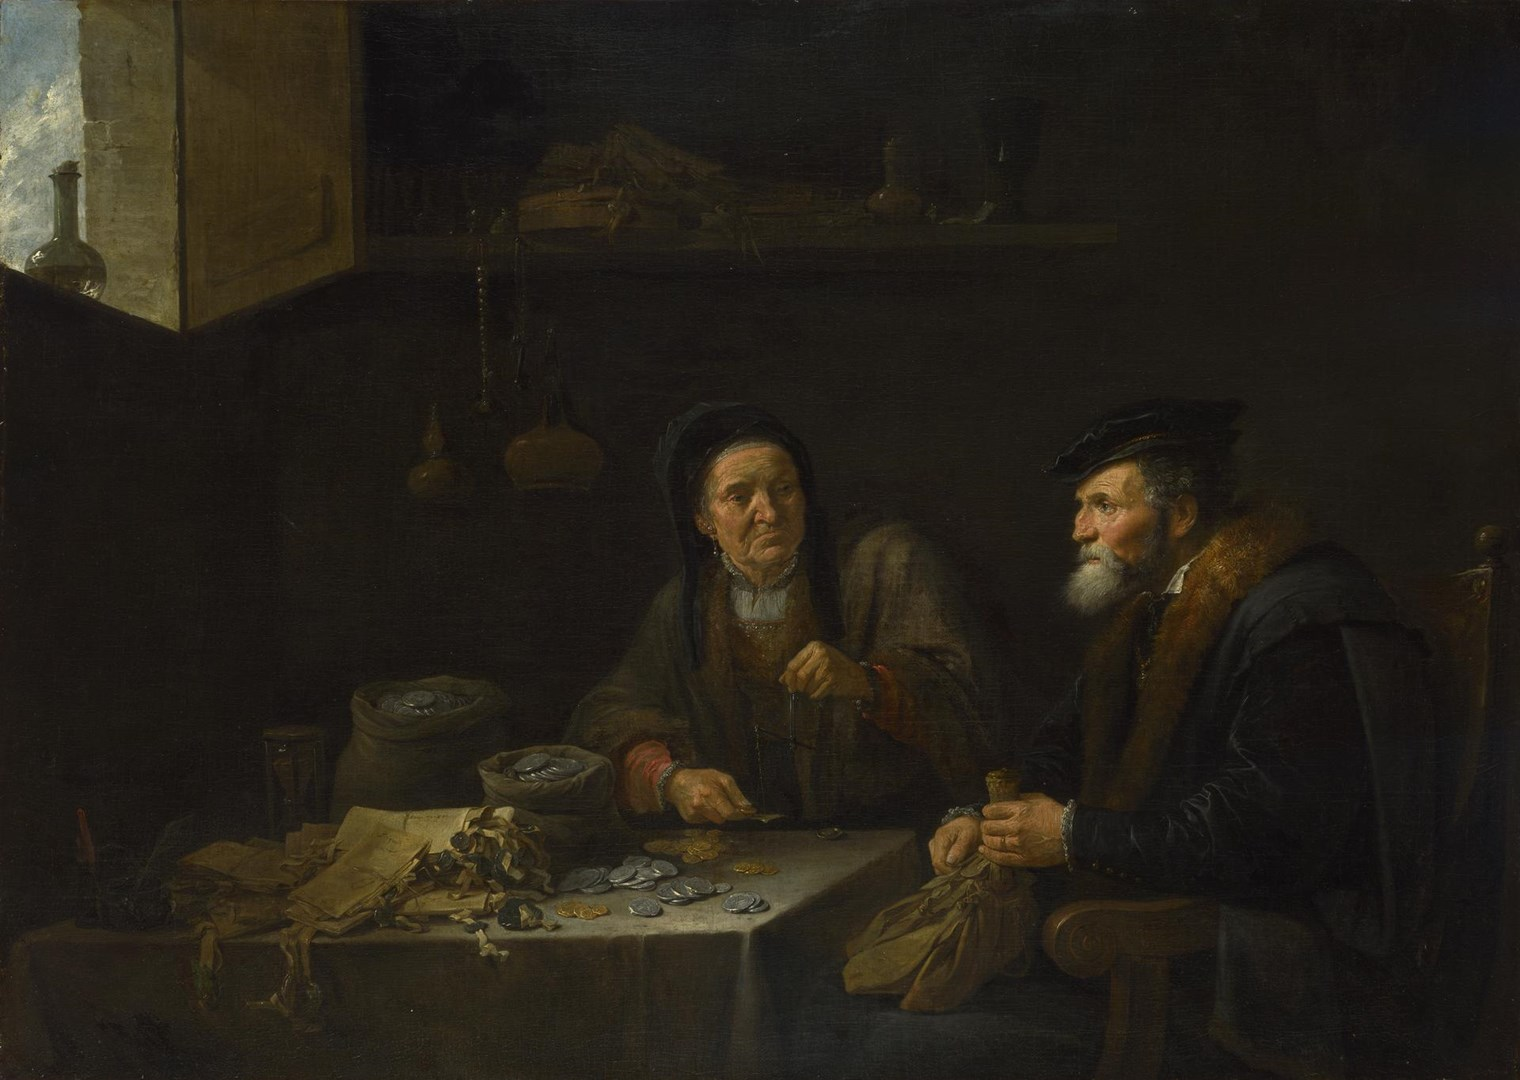 The Covetous Man by David Teniers the Younger